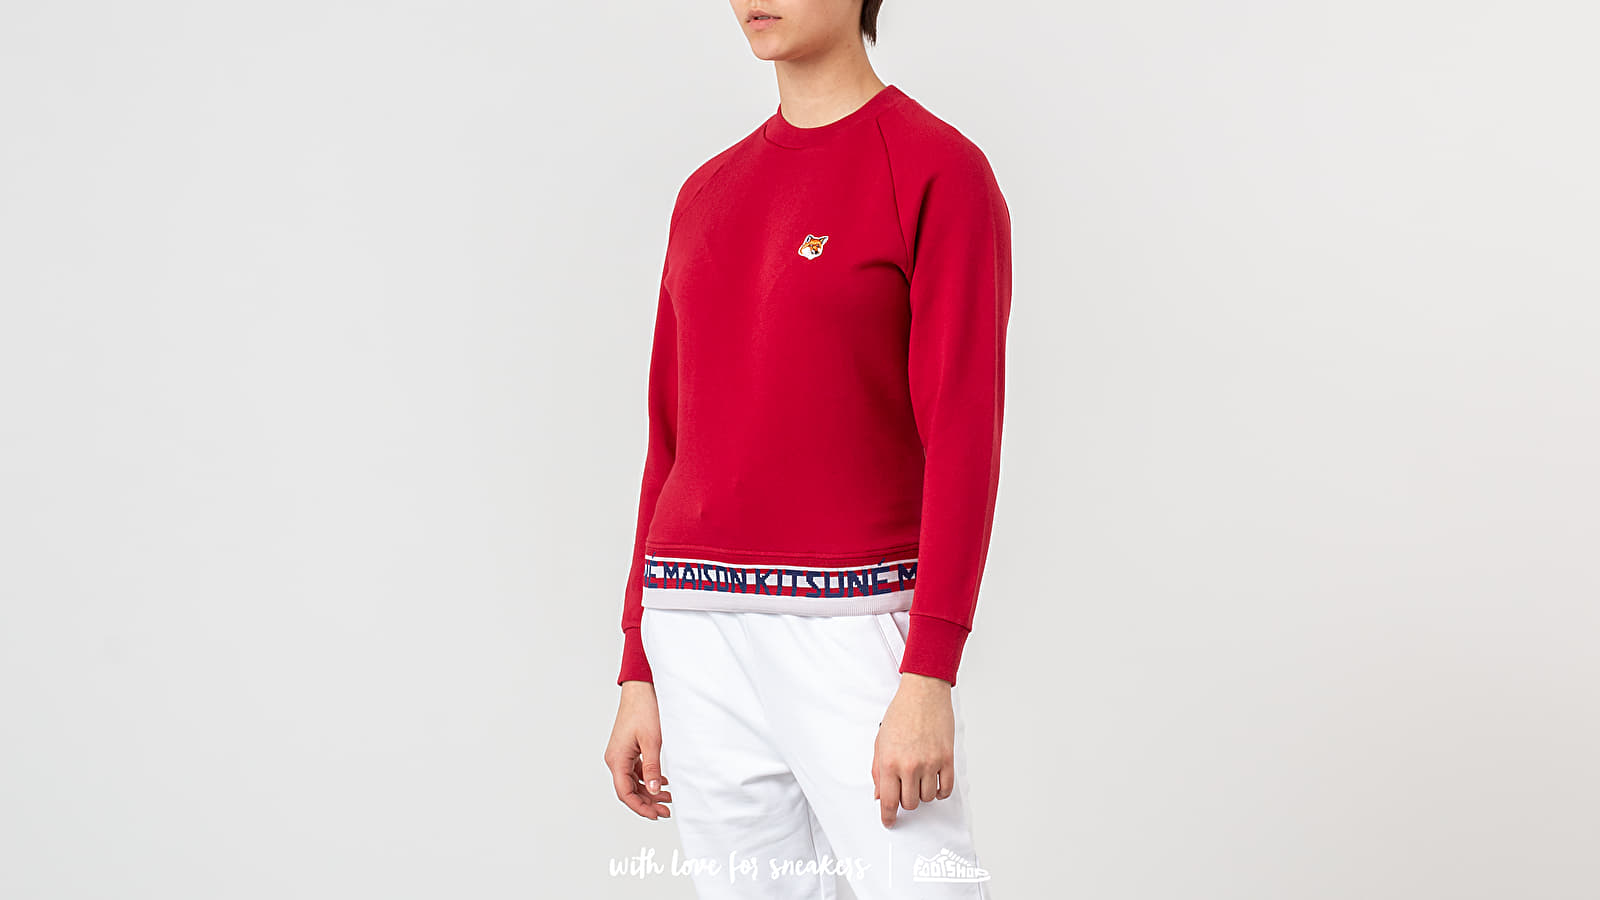 MAISON KITSUNÉ Fox Head Patch Jacquard Crewneck